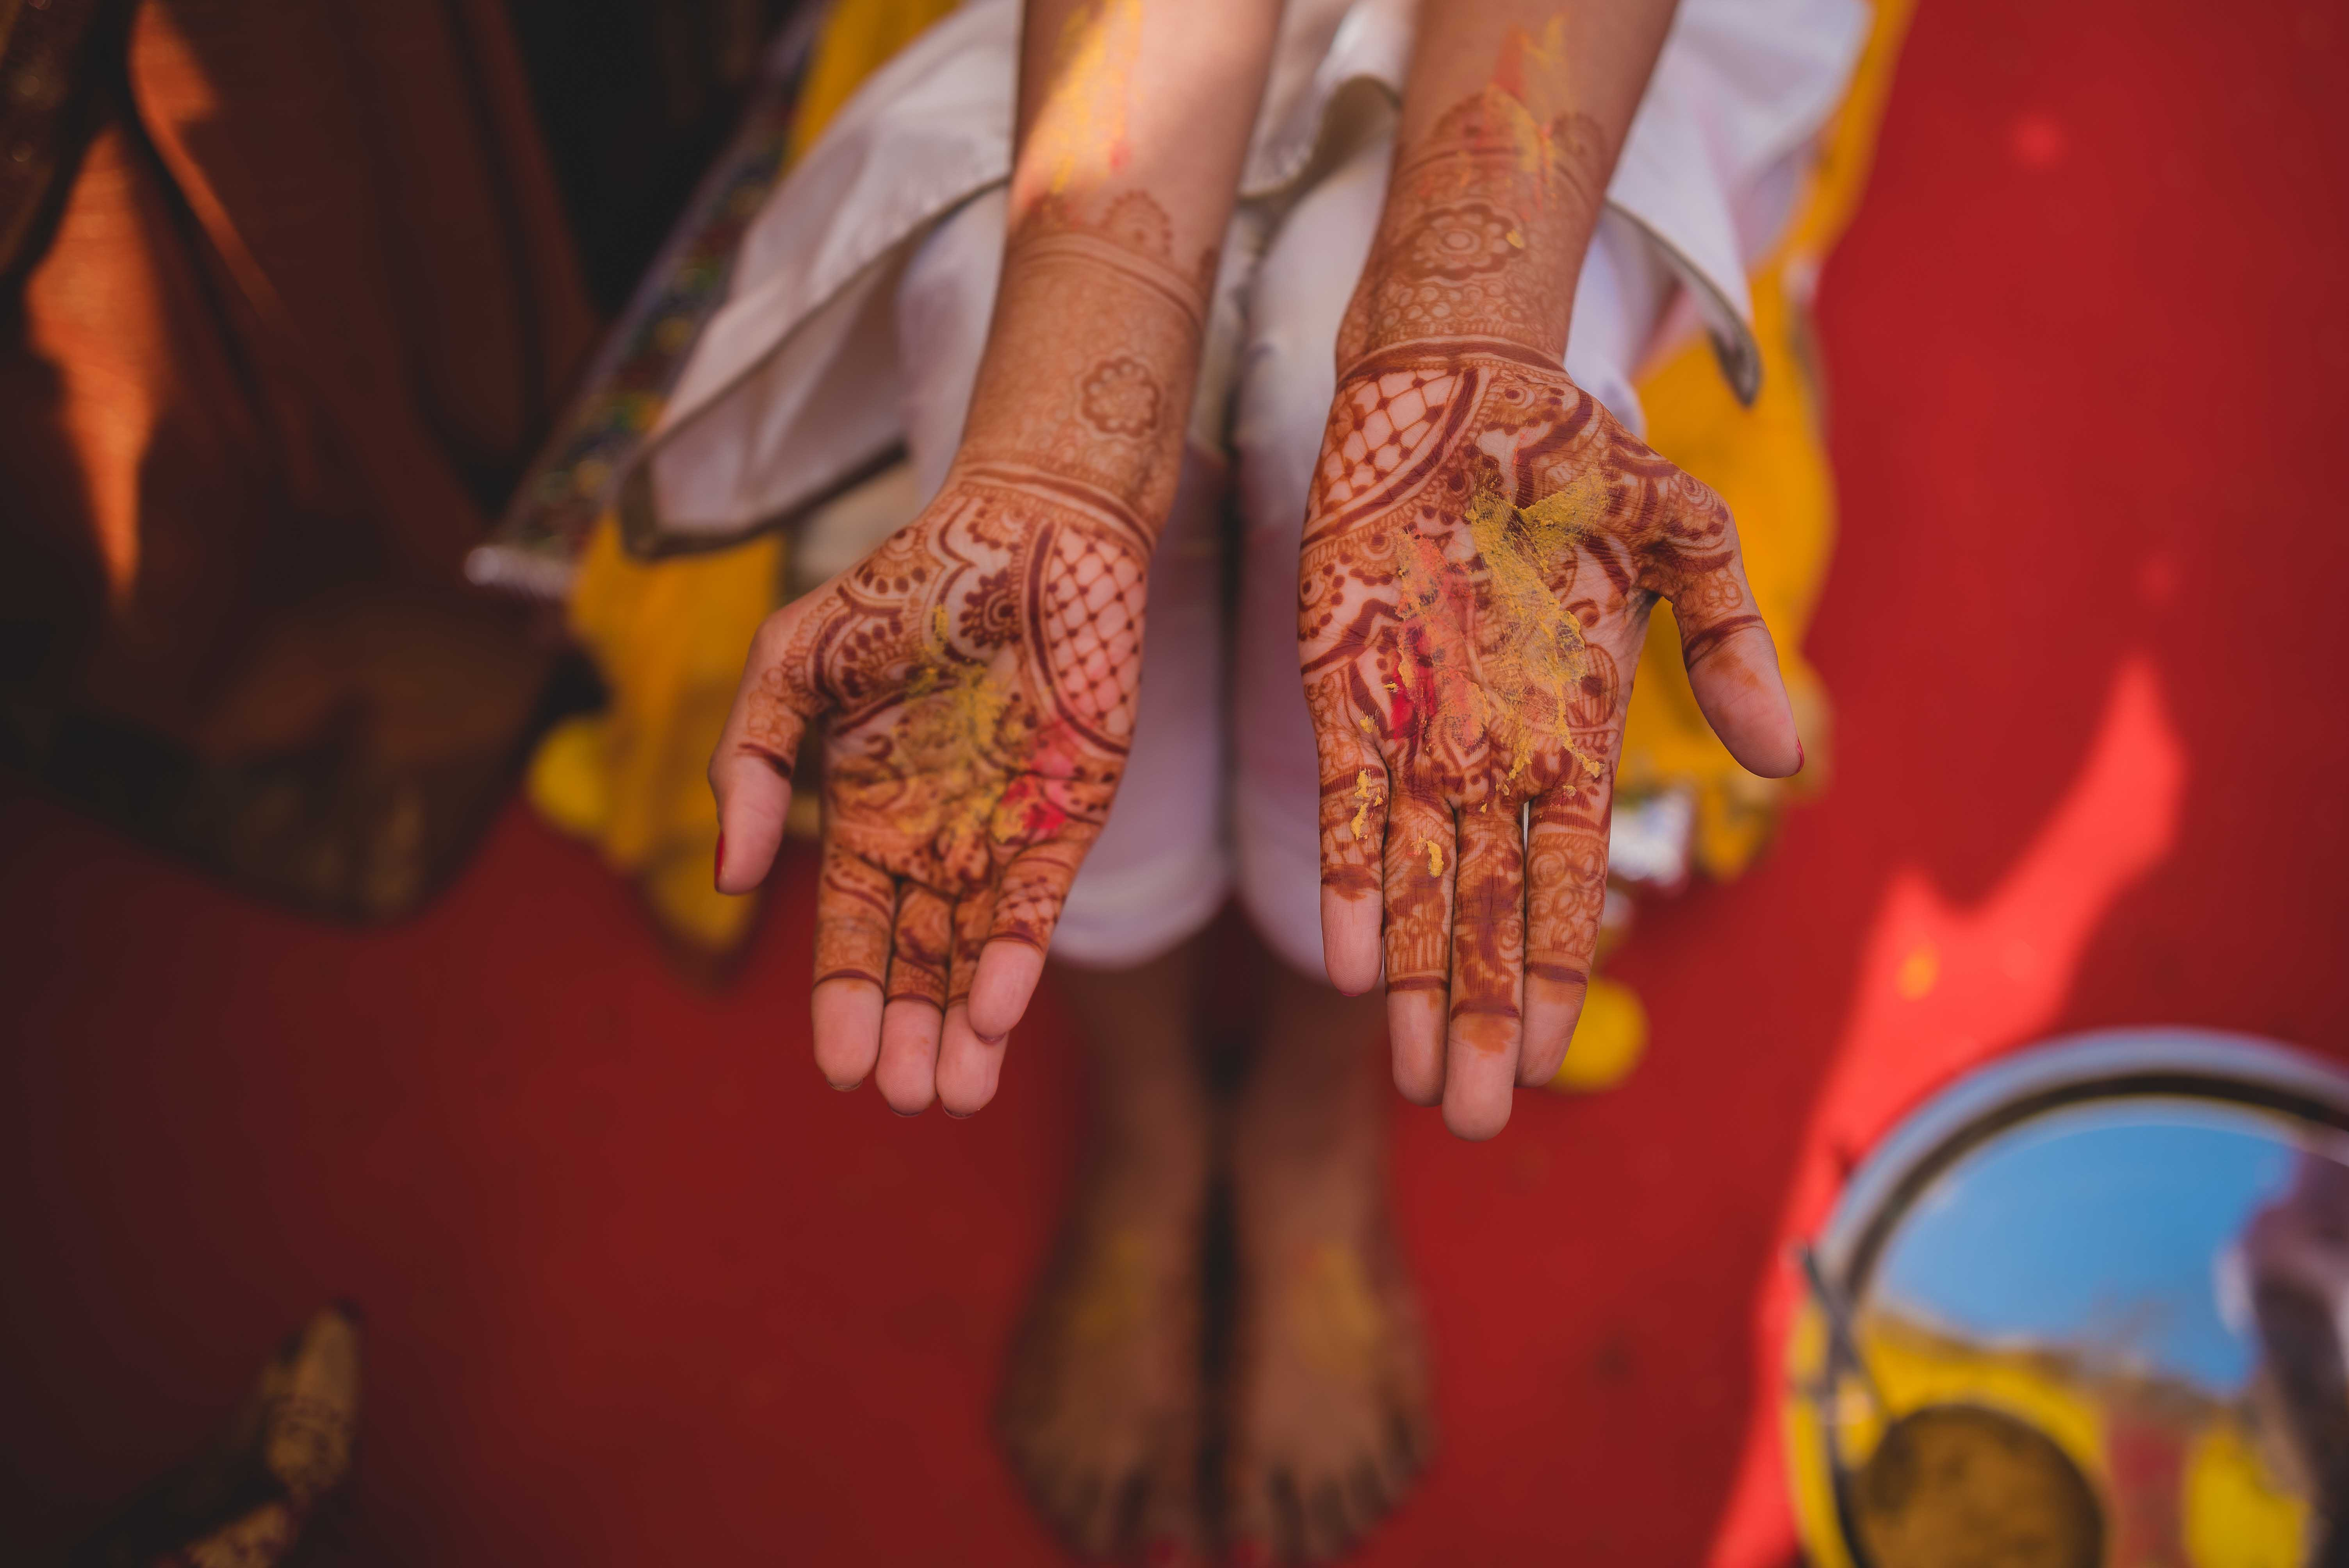 Exotic Destination Wedding in India - Bride Nidhi with mehndi